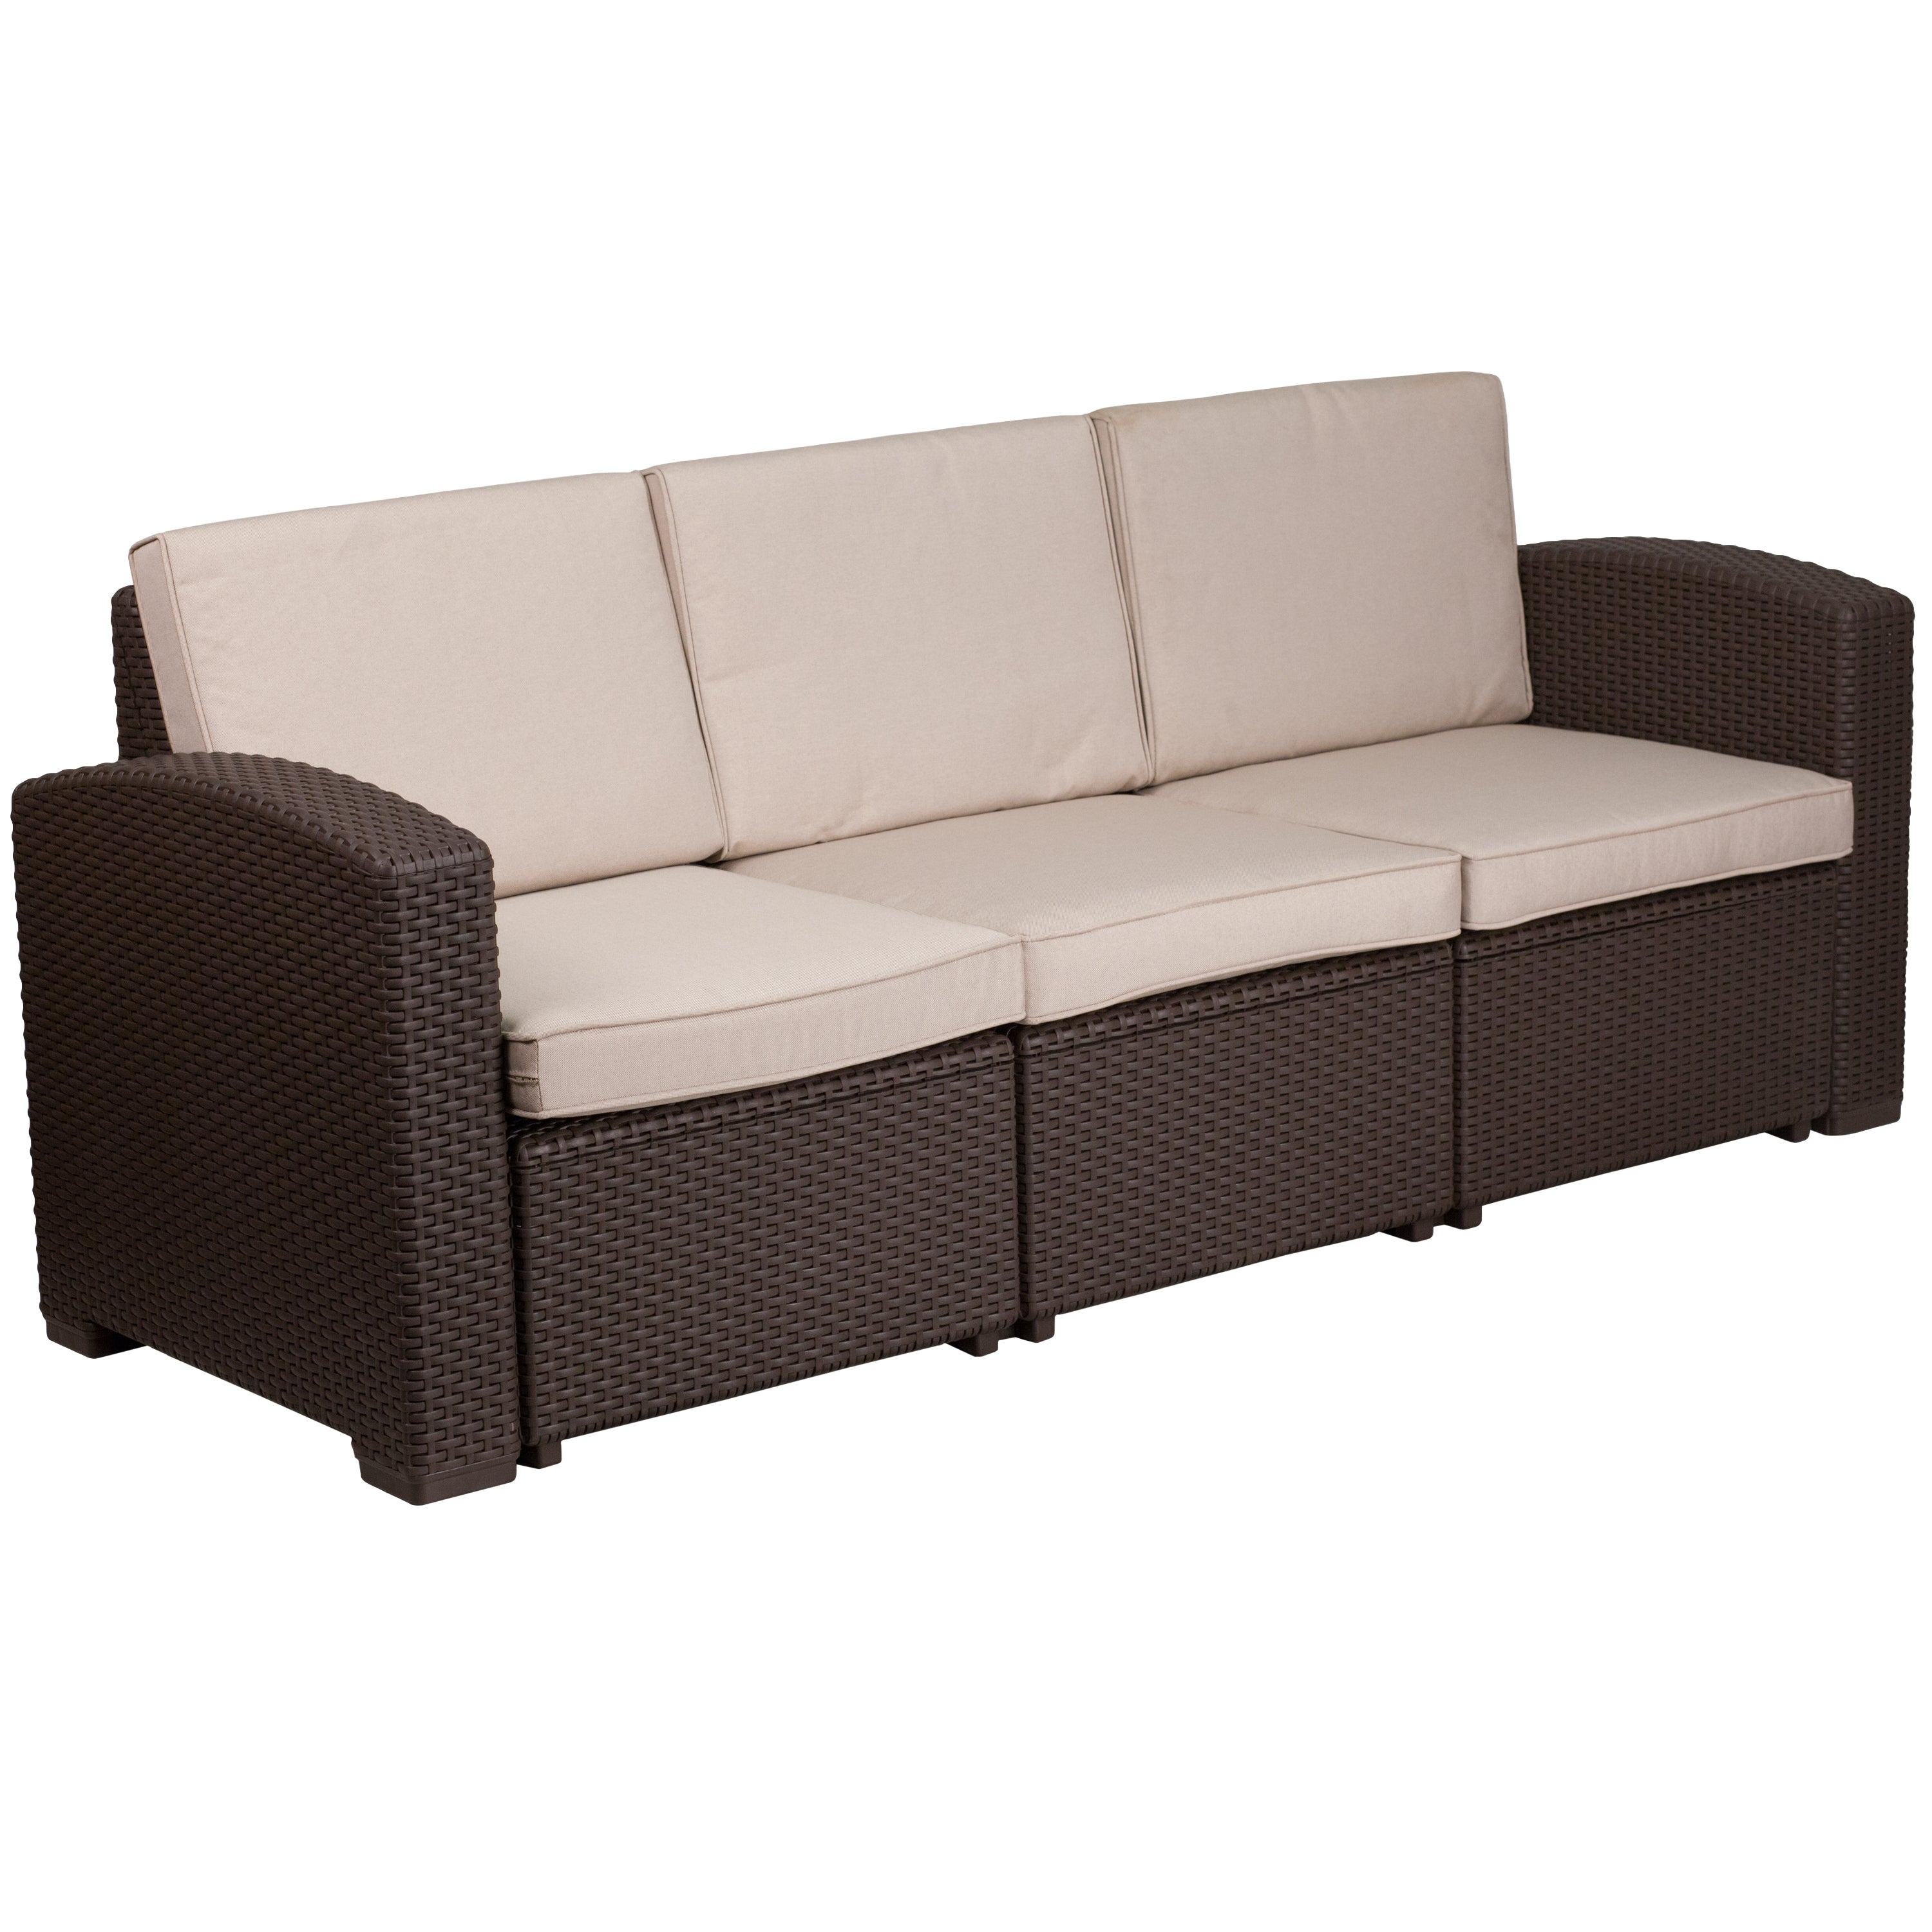 Faux Rattan Sofa With All Weather Cushions Qolture